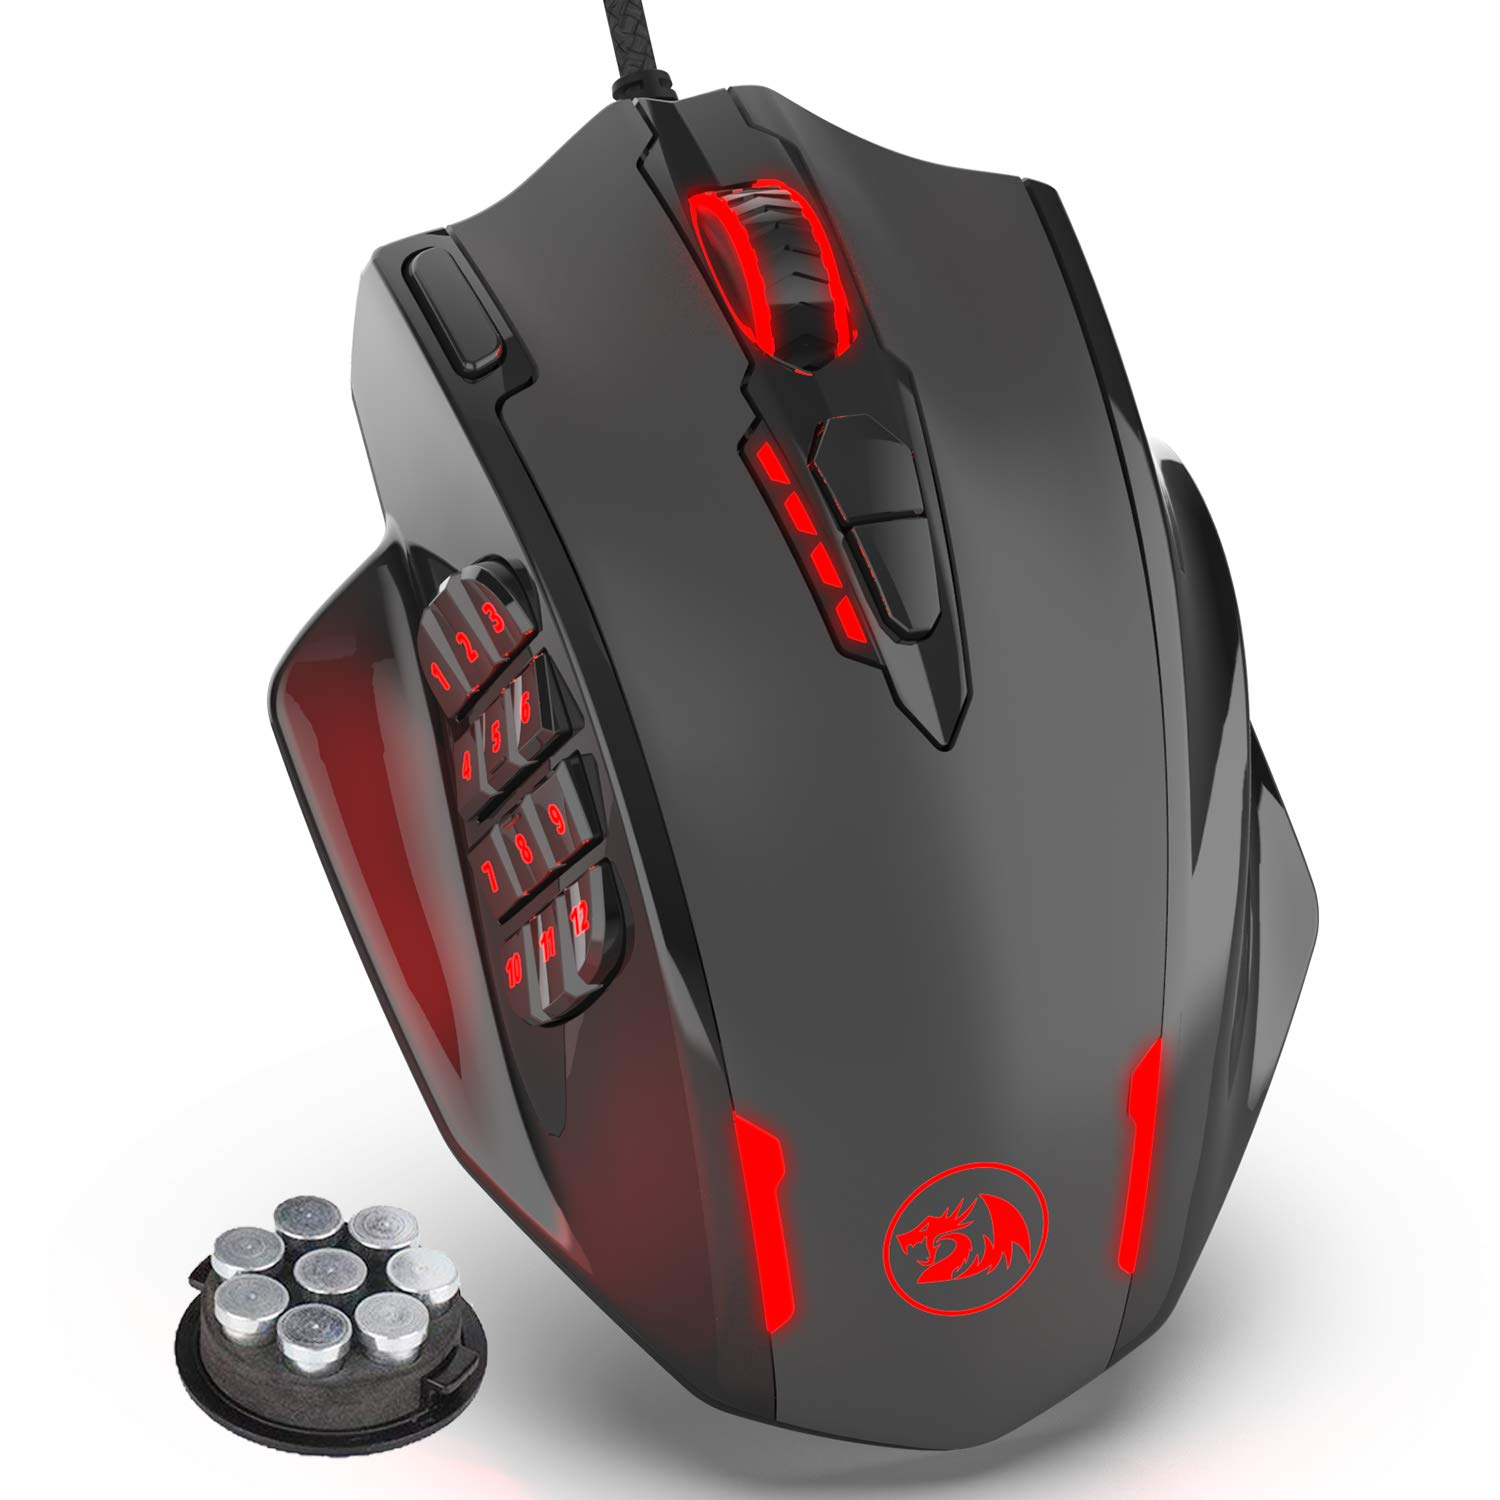 Redragon Impact RGB LED MMO Mouse with Side Buttons Laser Wired Gaming Mouse with 12,400DPI, High Precision, 19 Programmable Mouse Buttons